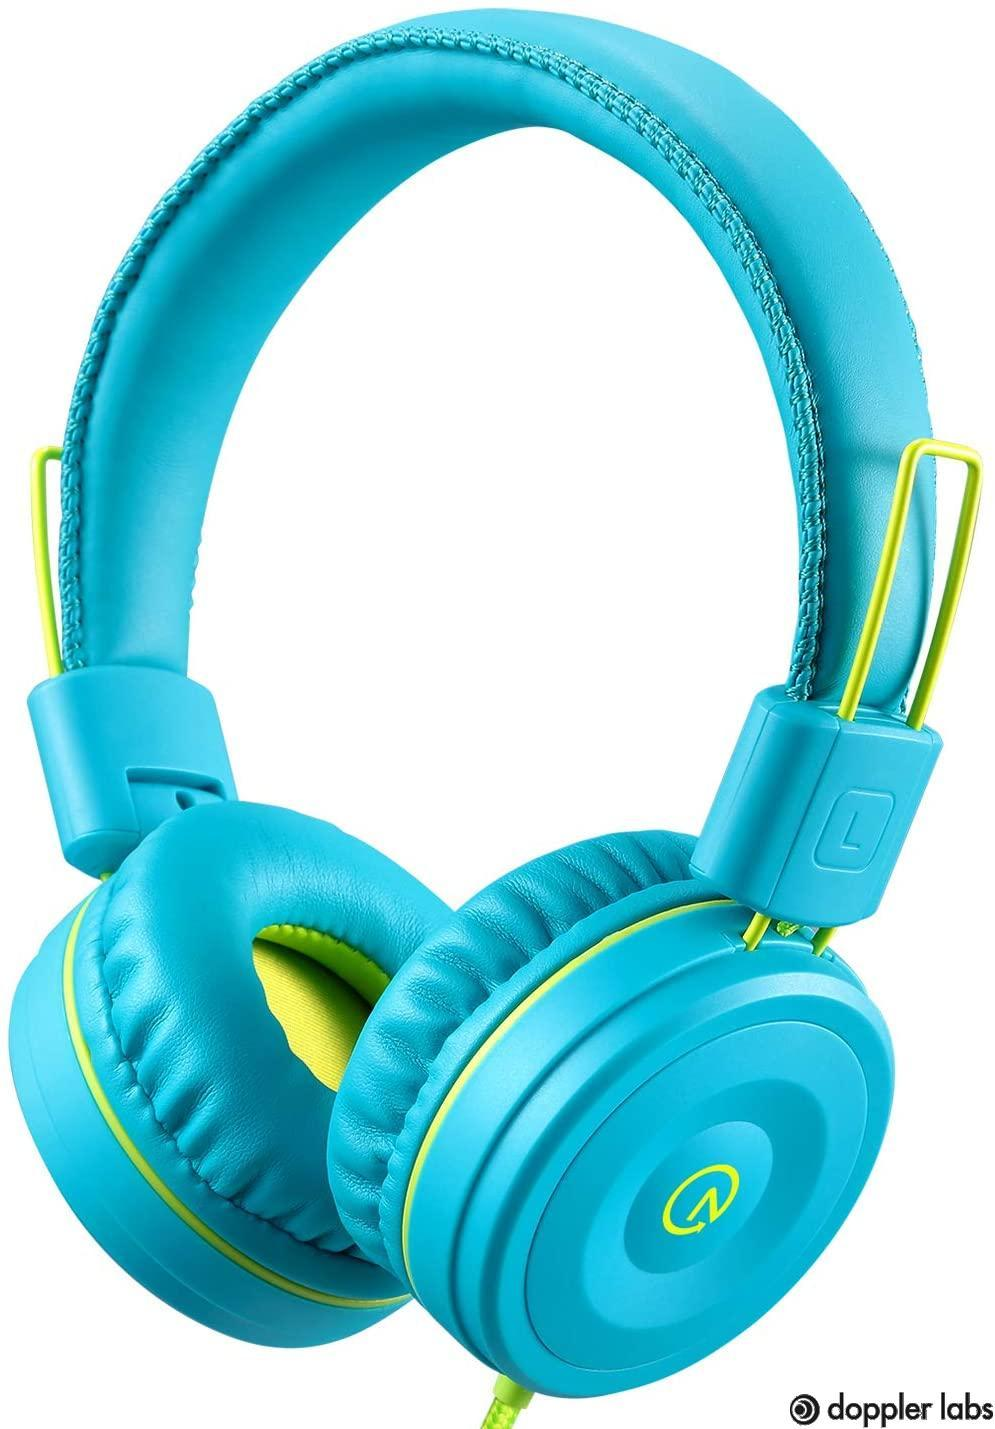 Noot Products K22 Kids Headphones